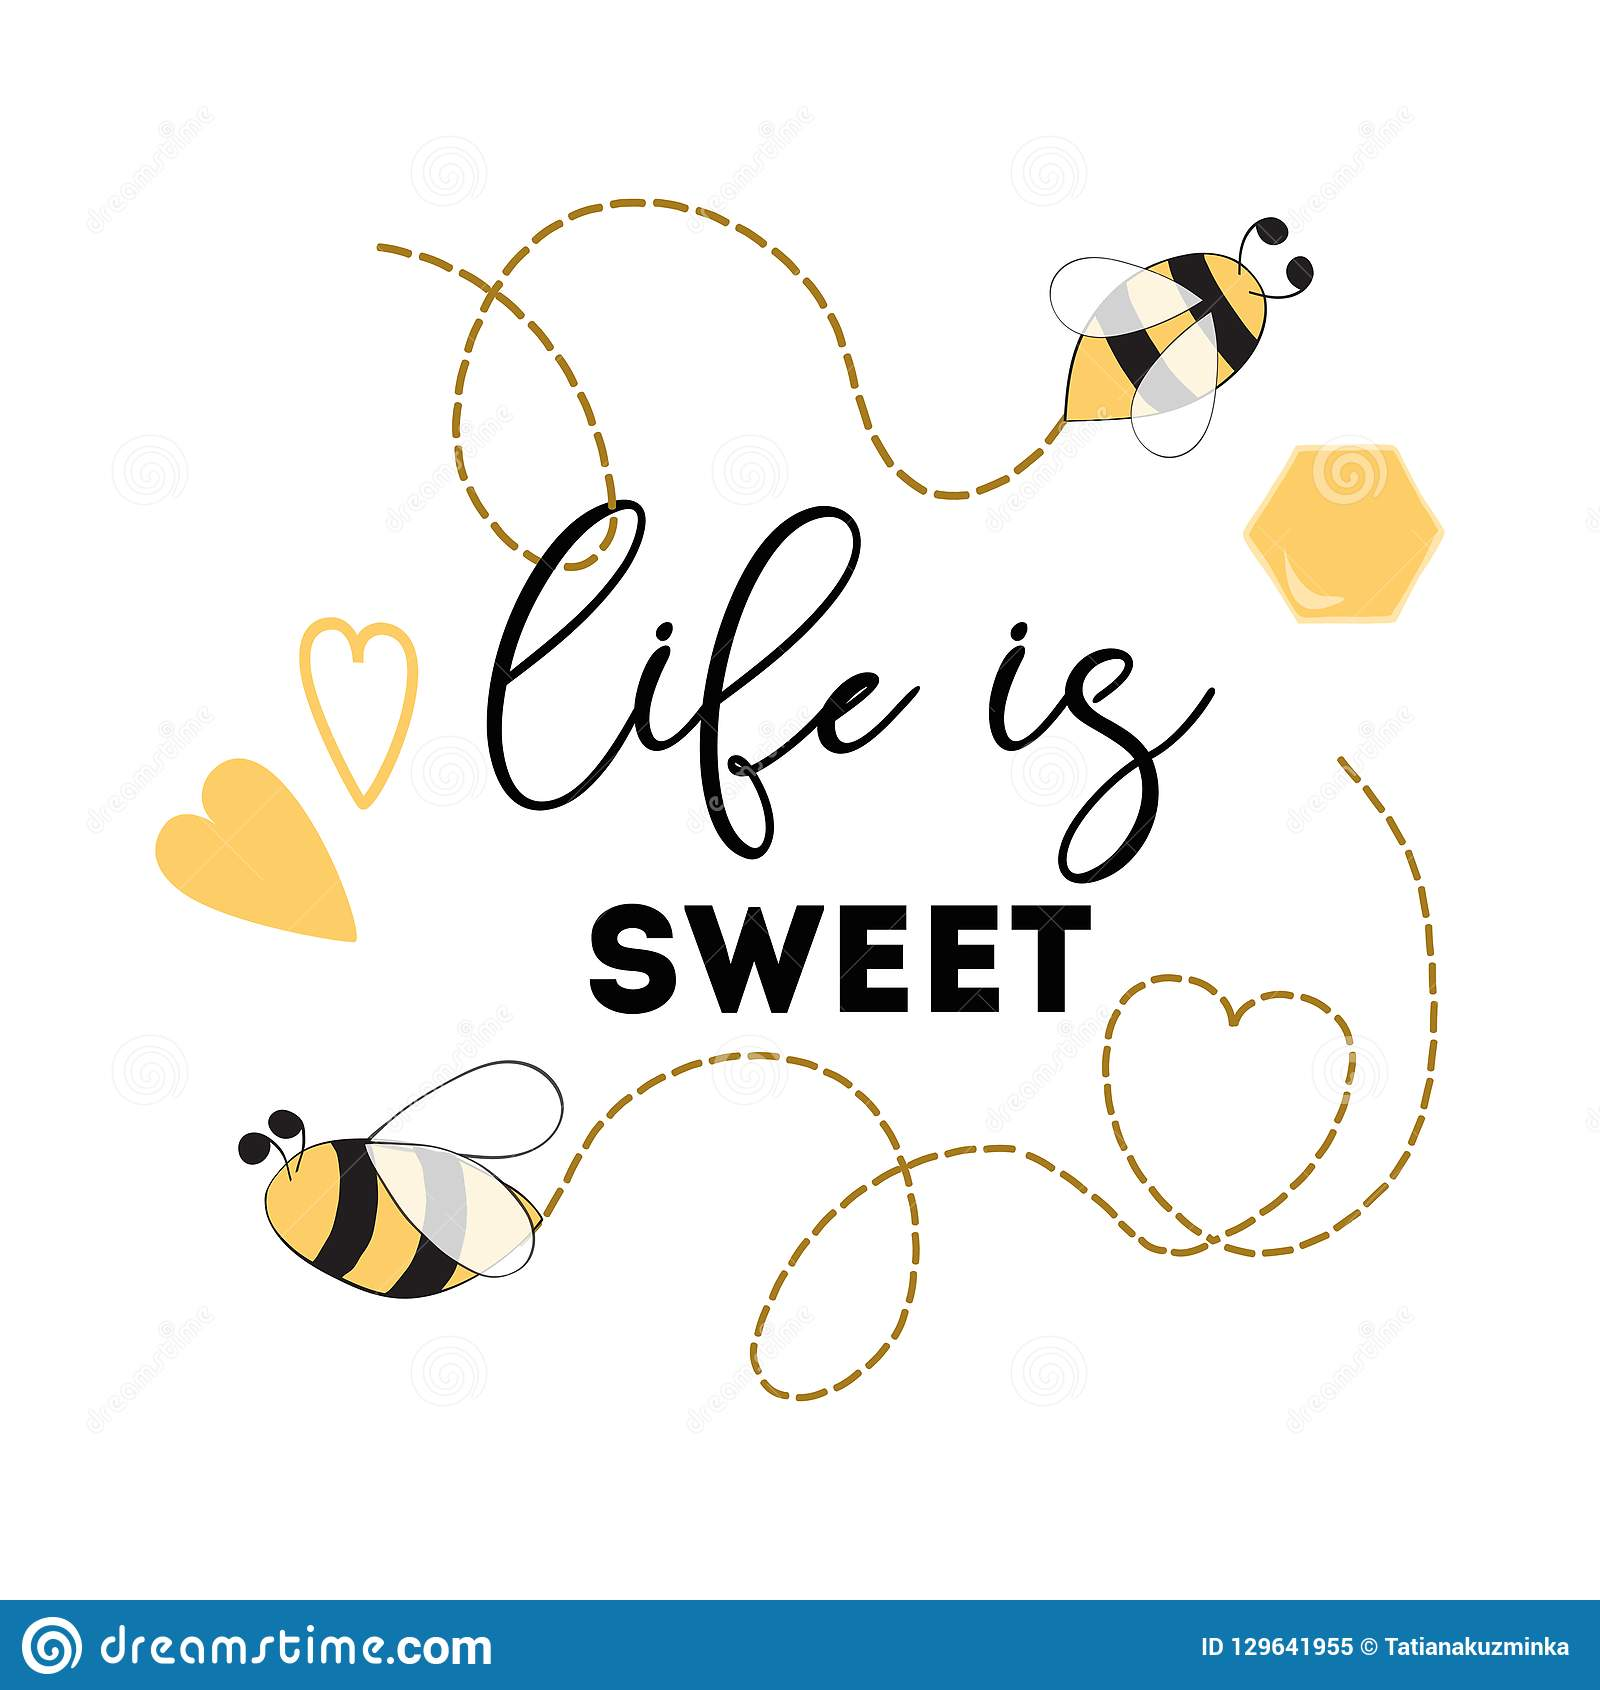 Life is sweet essay